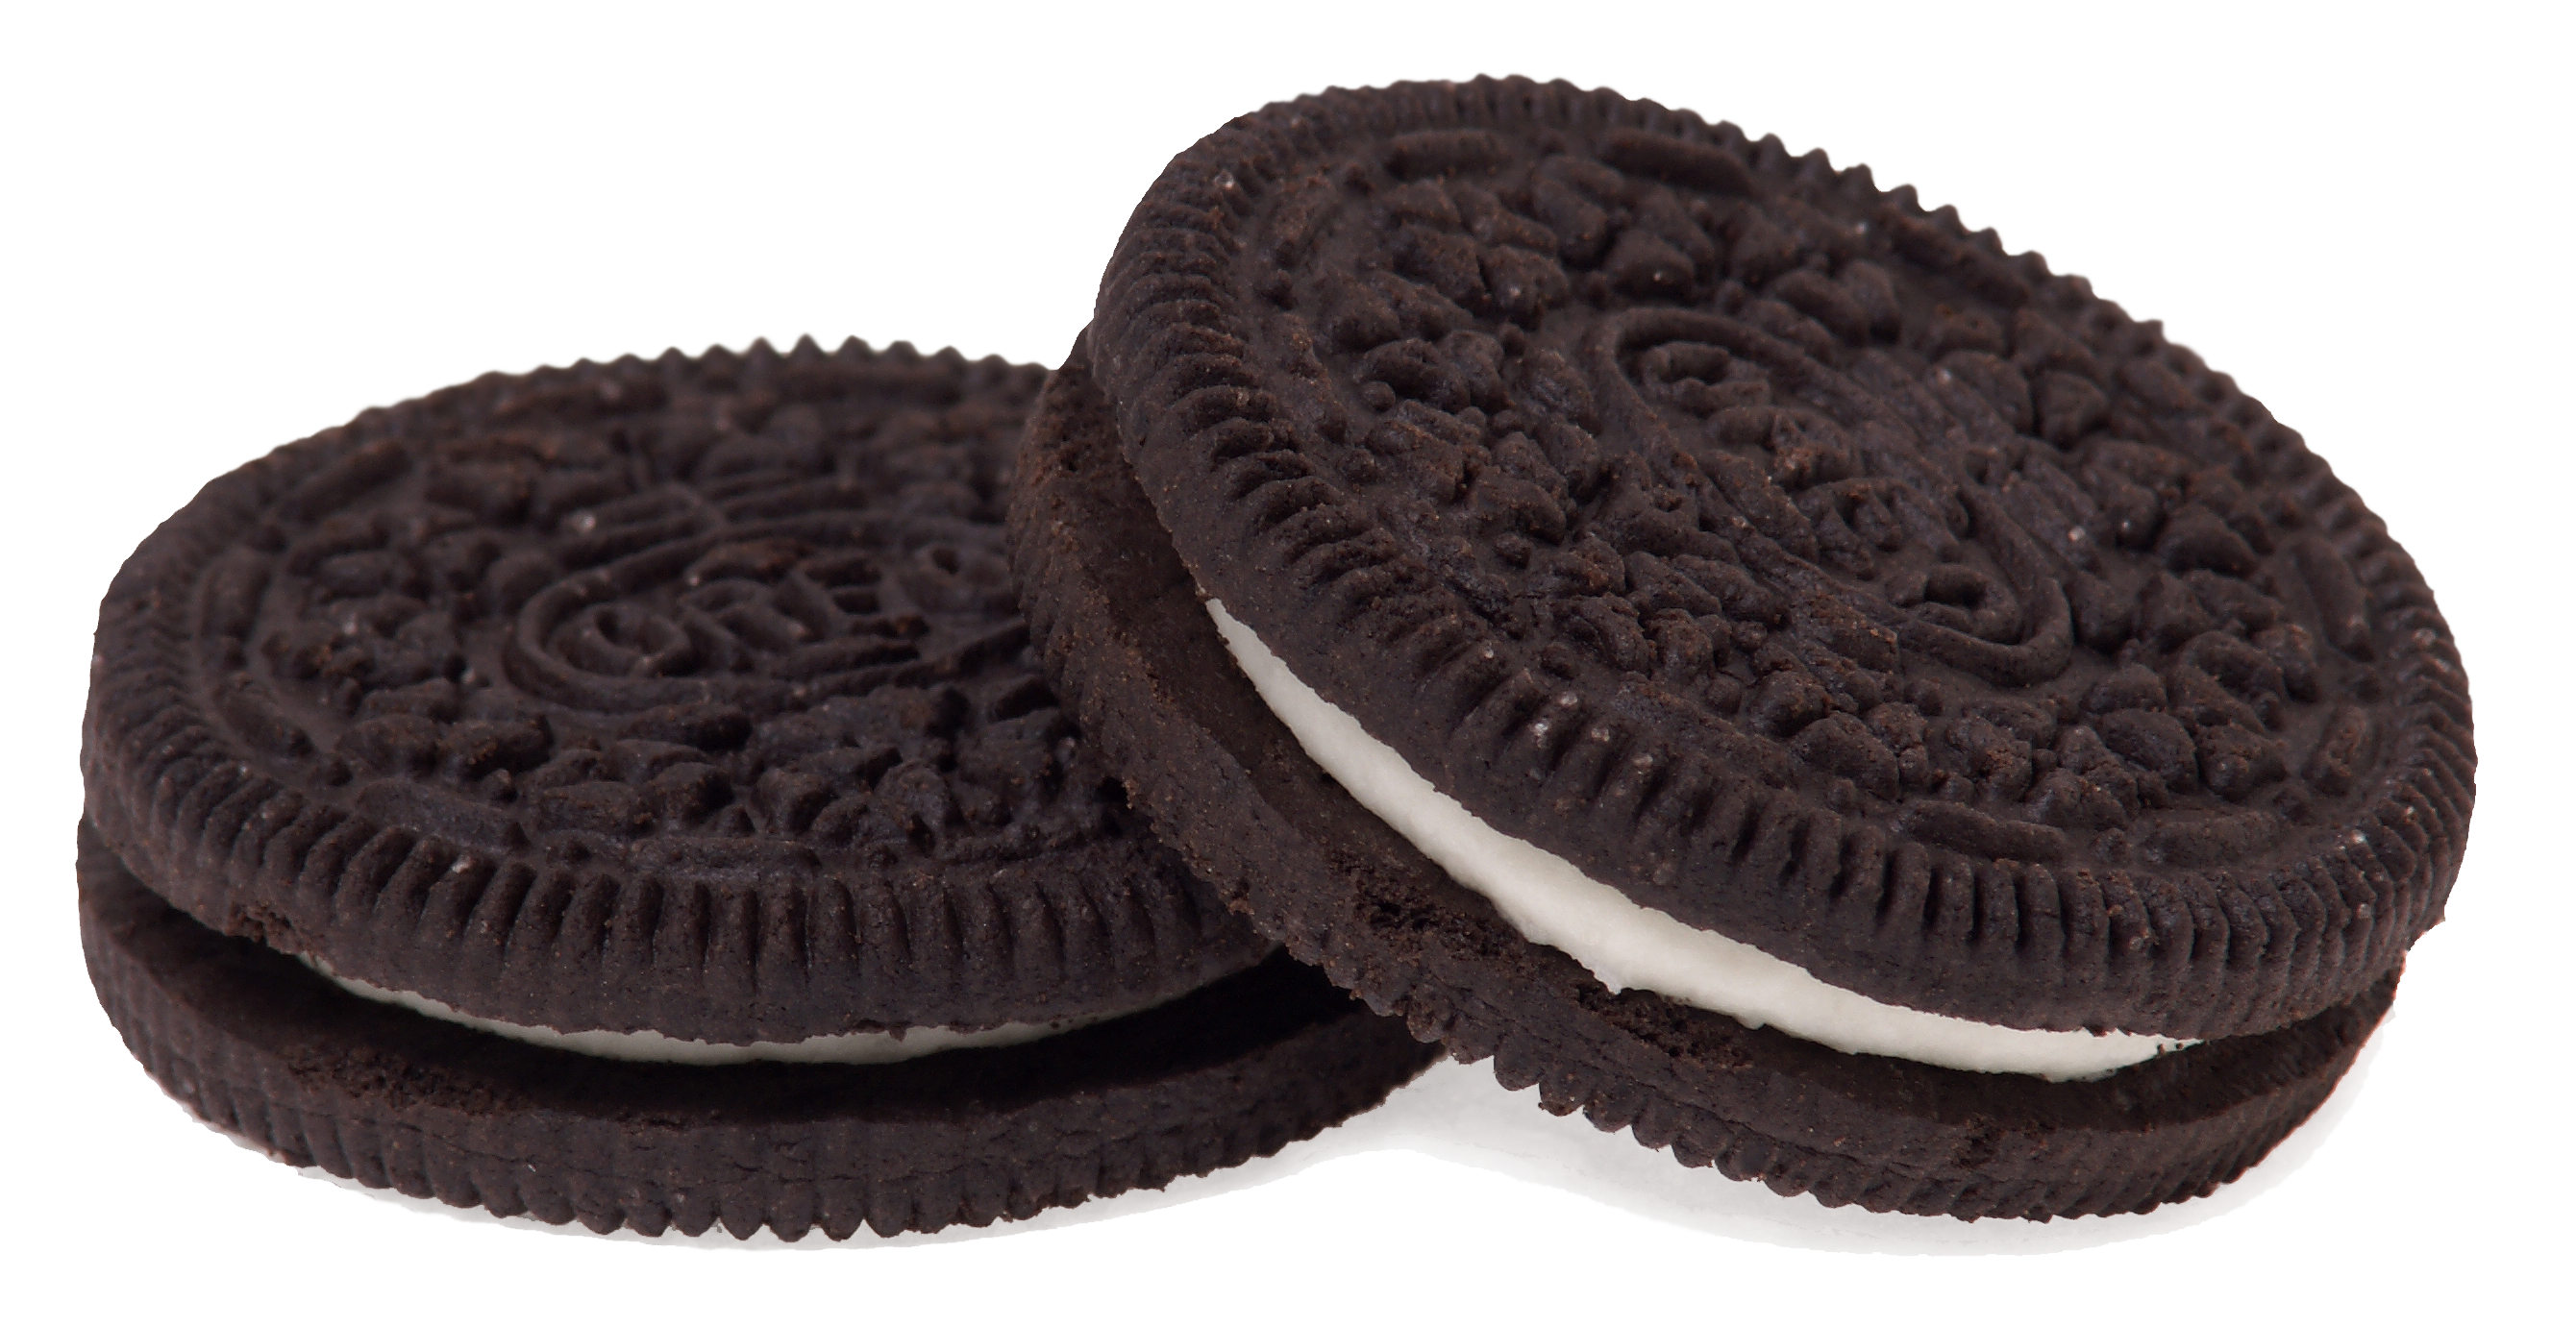 Oreo png. File biscuits transparent background